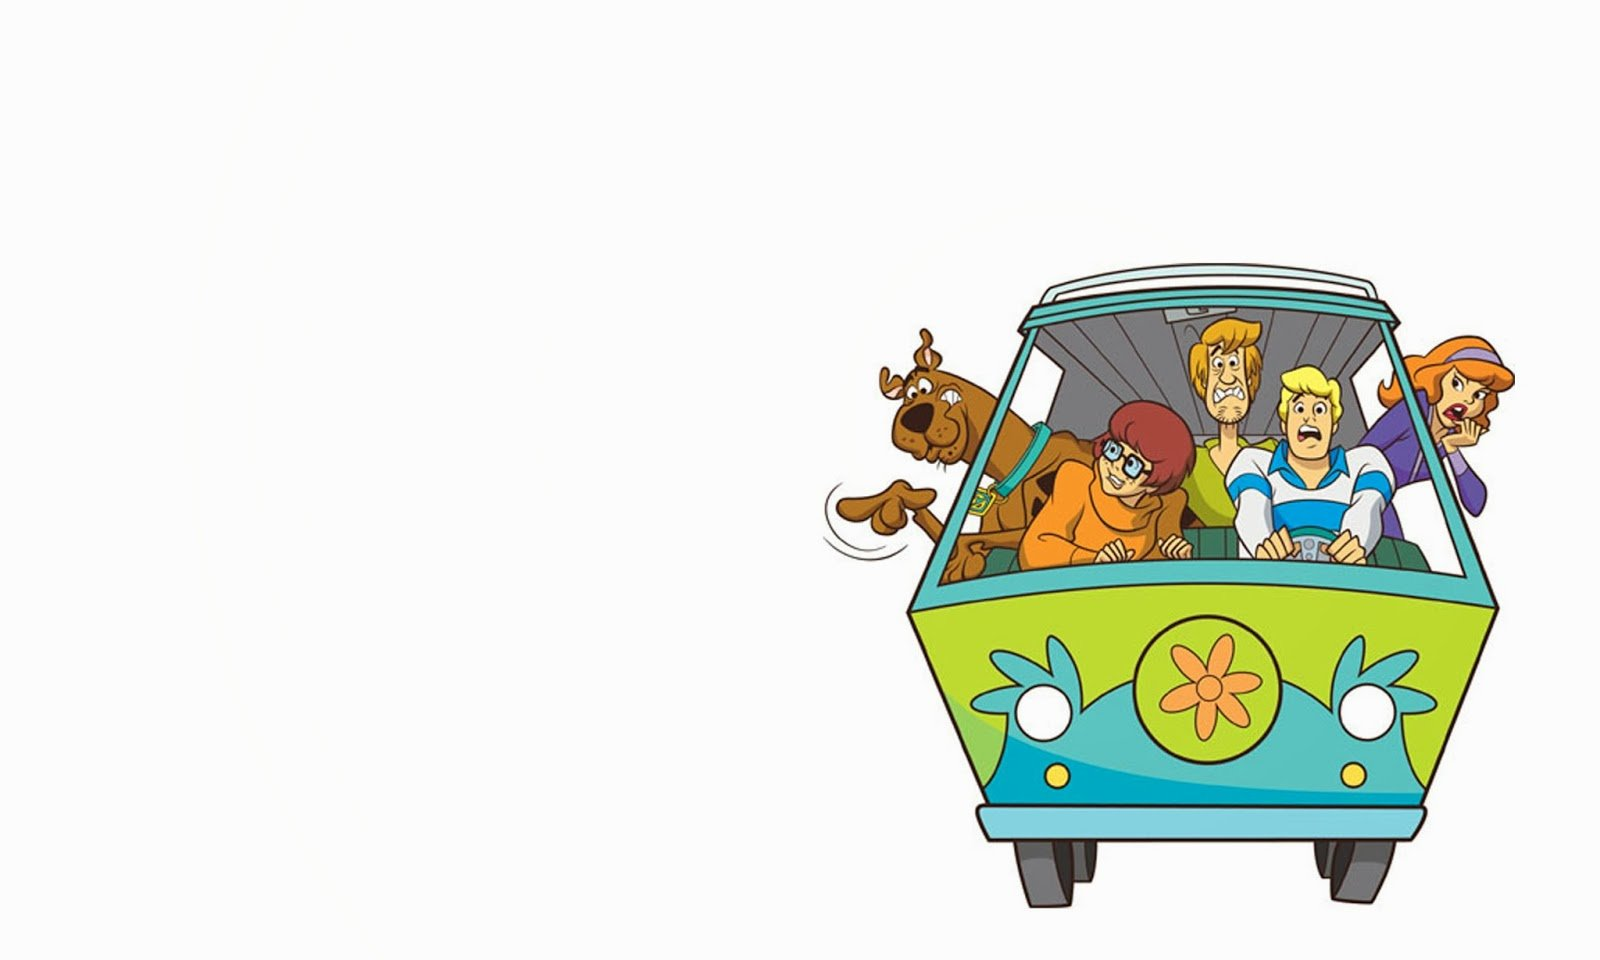 Free Download Series Scooby Doo Full Hd Wallpapers Scooby